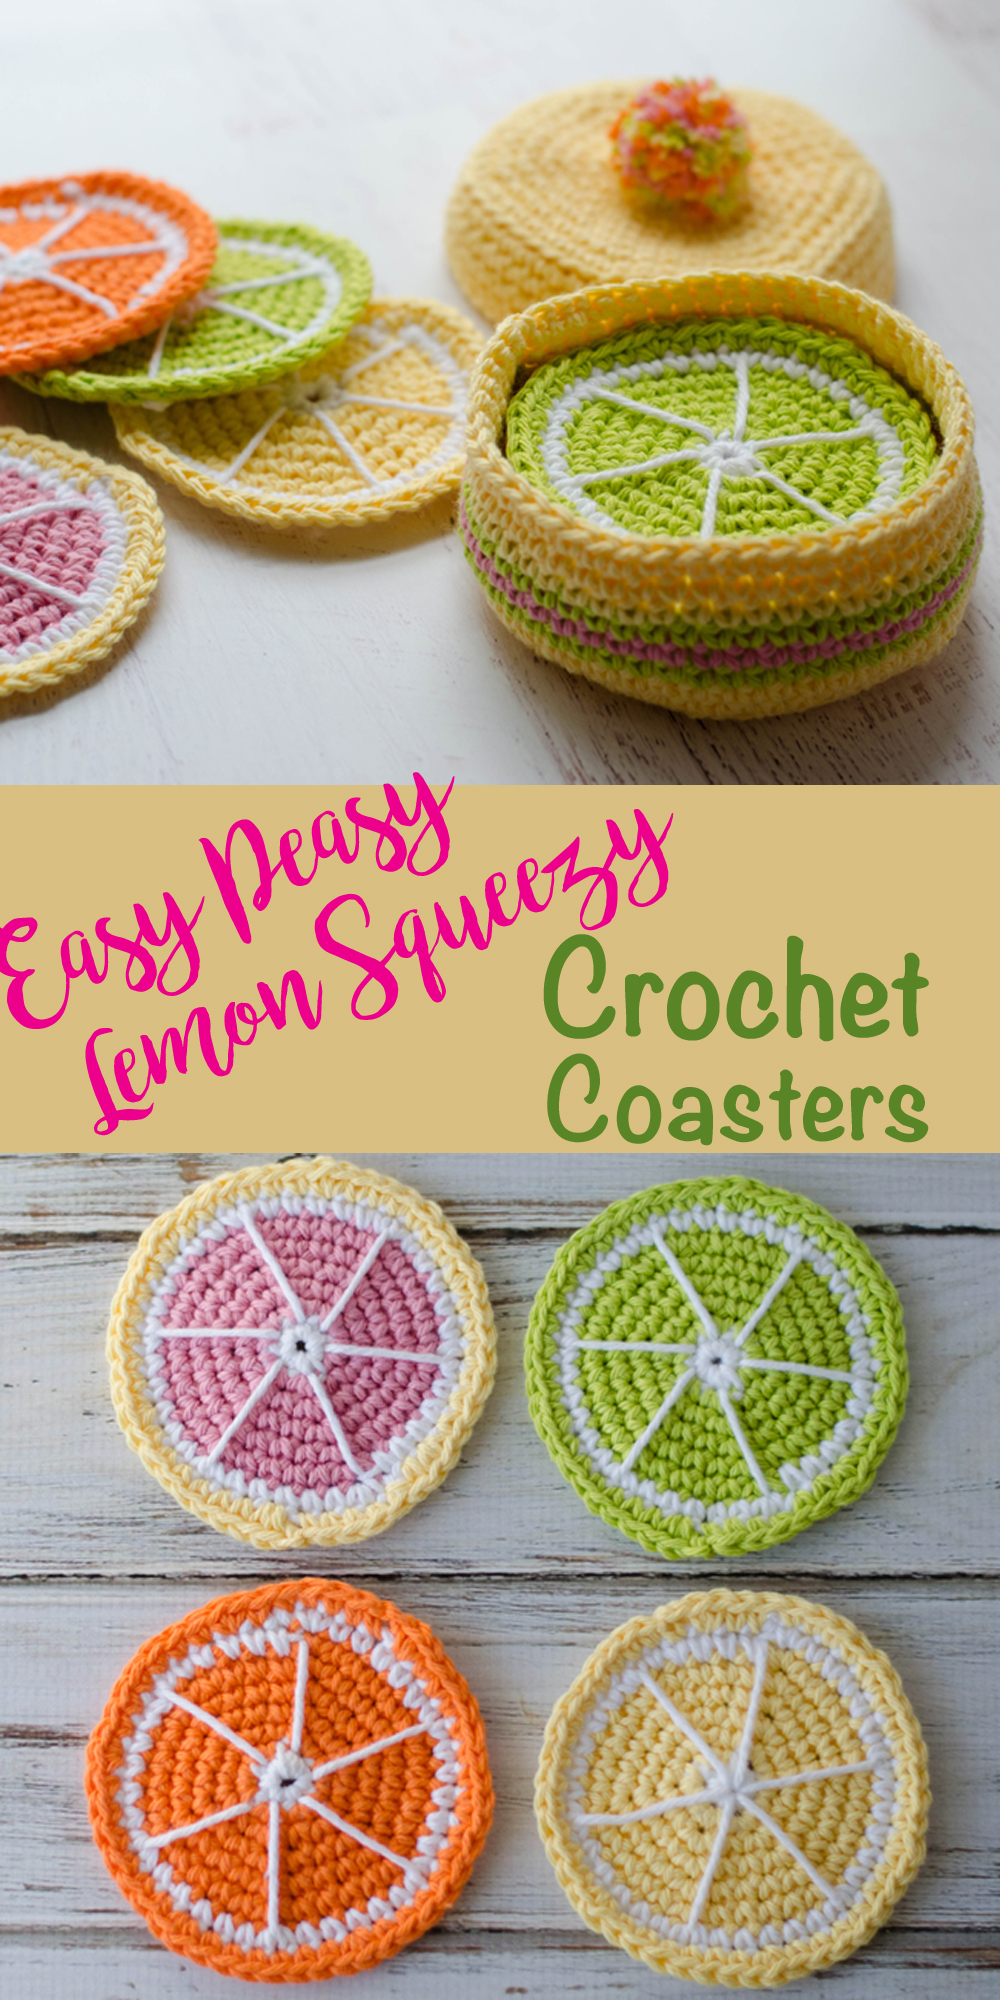 Fruit crochet coaster pattern